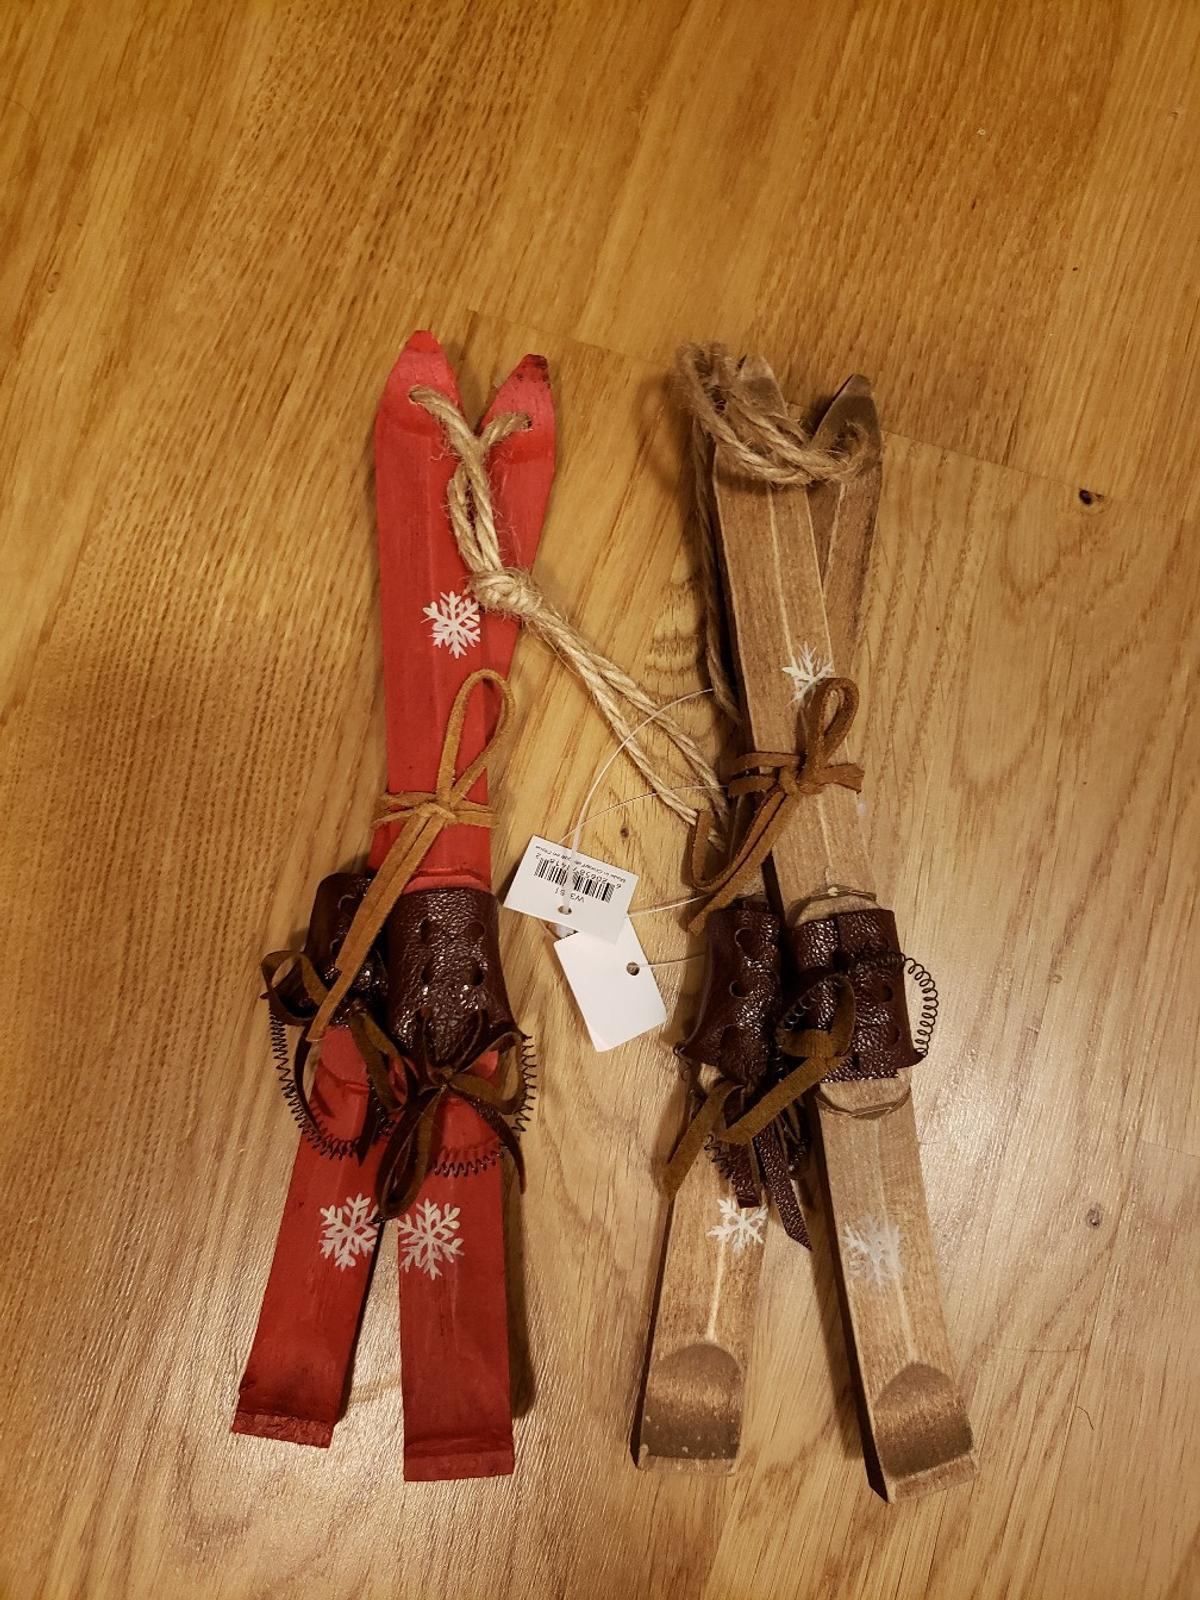 Christmas Ornaments Wooden Skis